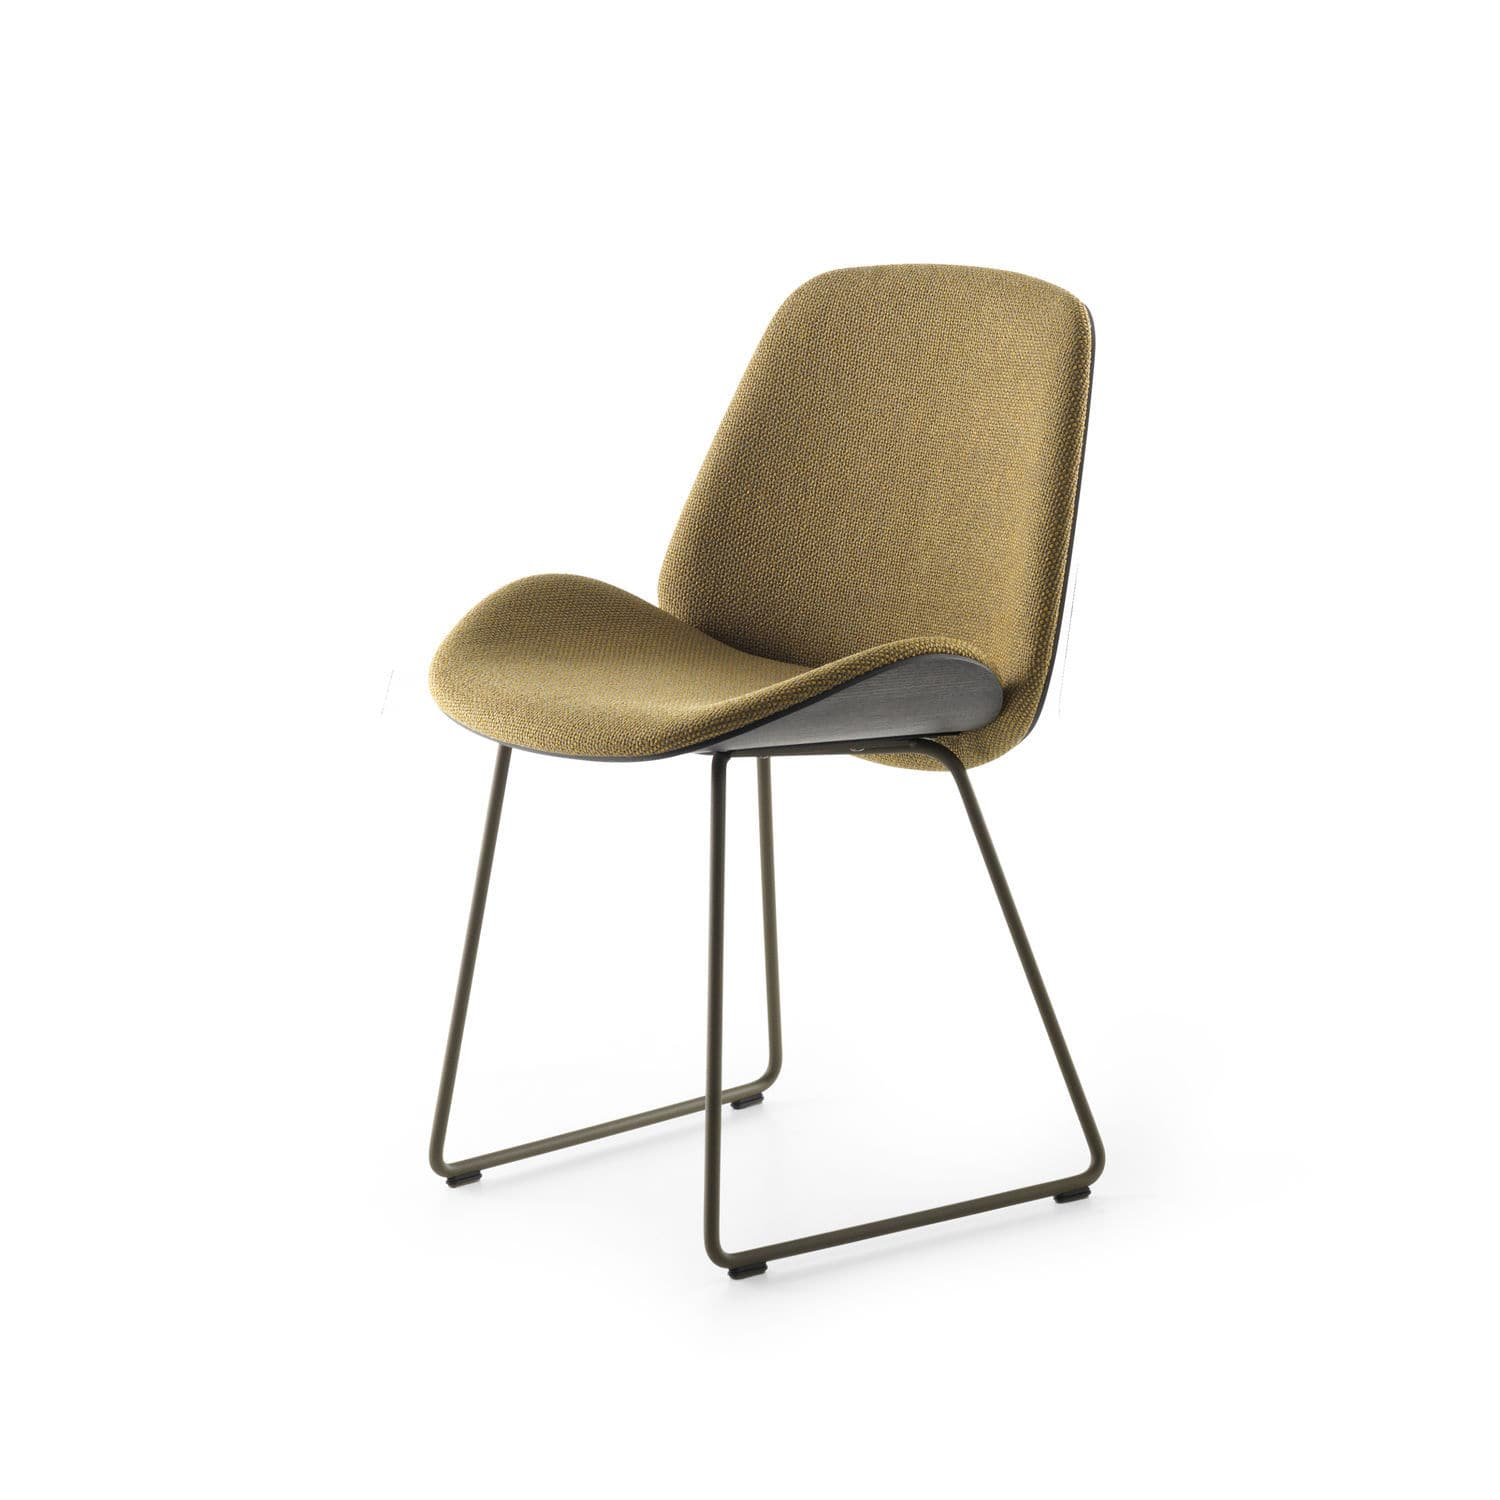 Contemporary Dining Chair Upholstered Sled Base Wooden Lx684 By Pascal Bosetti